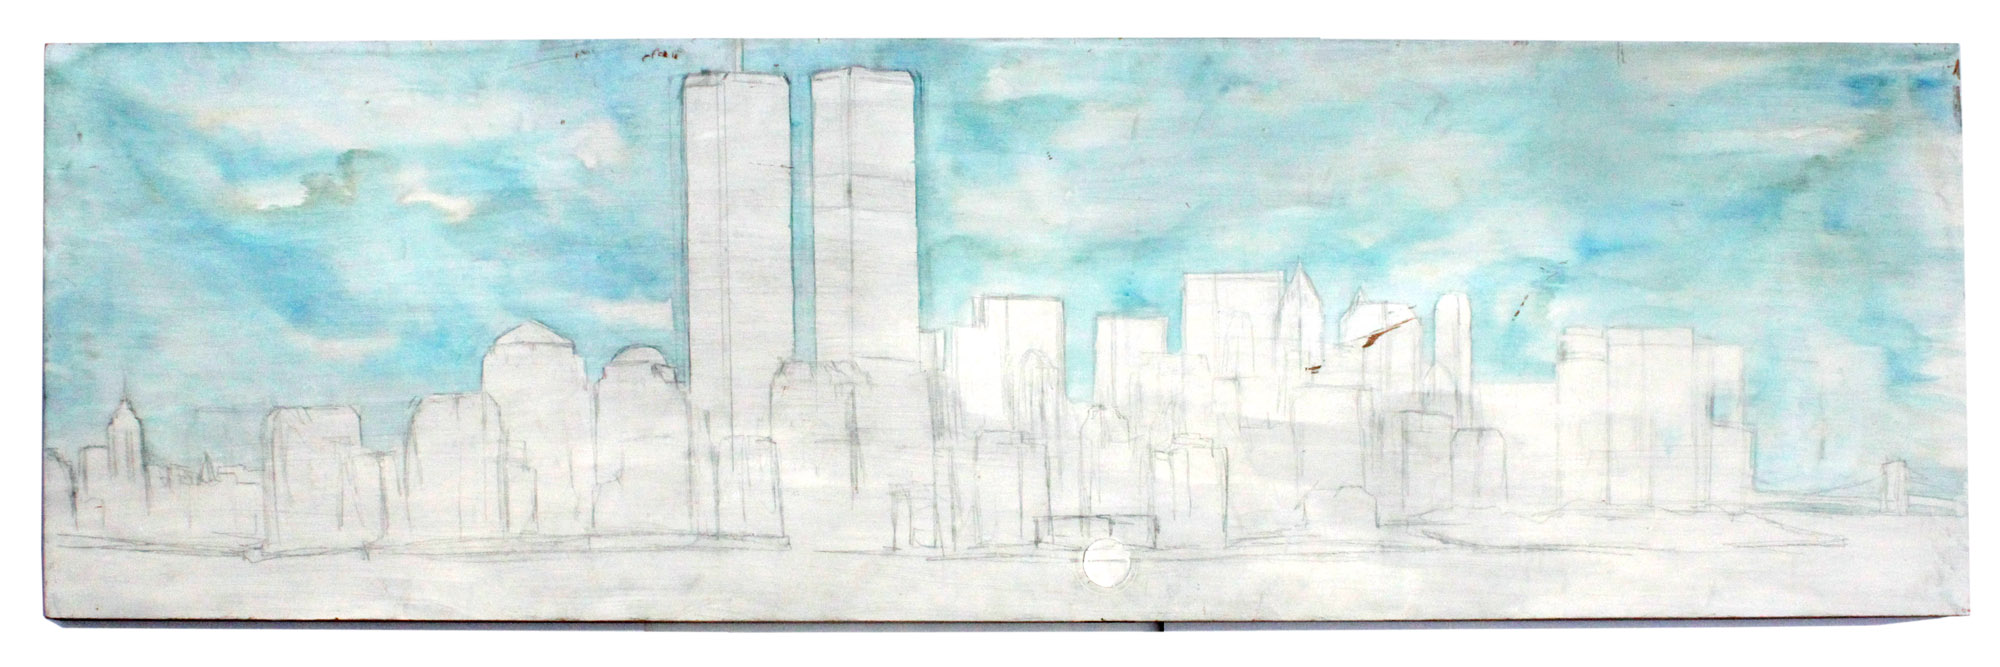 The Unfinished Painting of the World Trade Center, Medium: Door – Michael Raisch © 2002